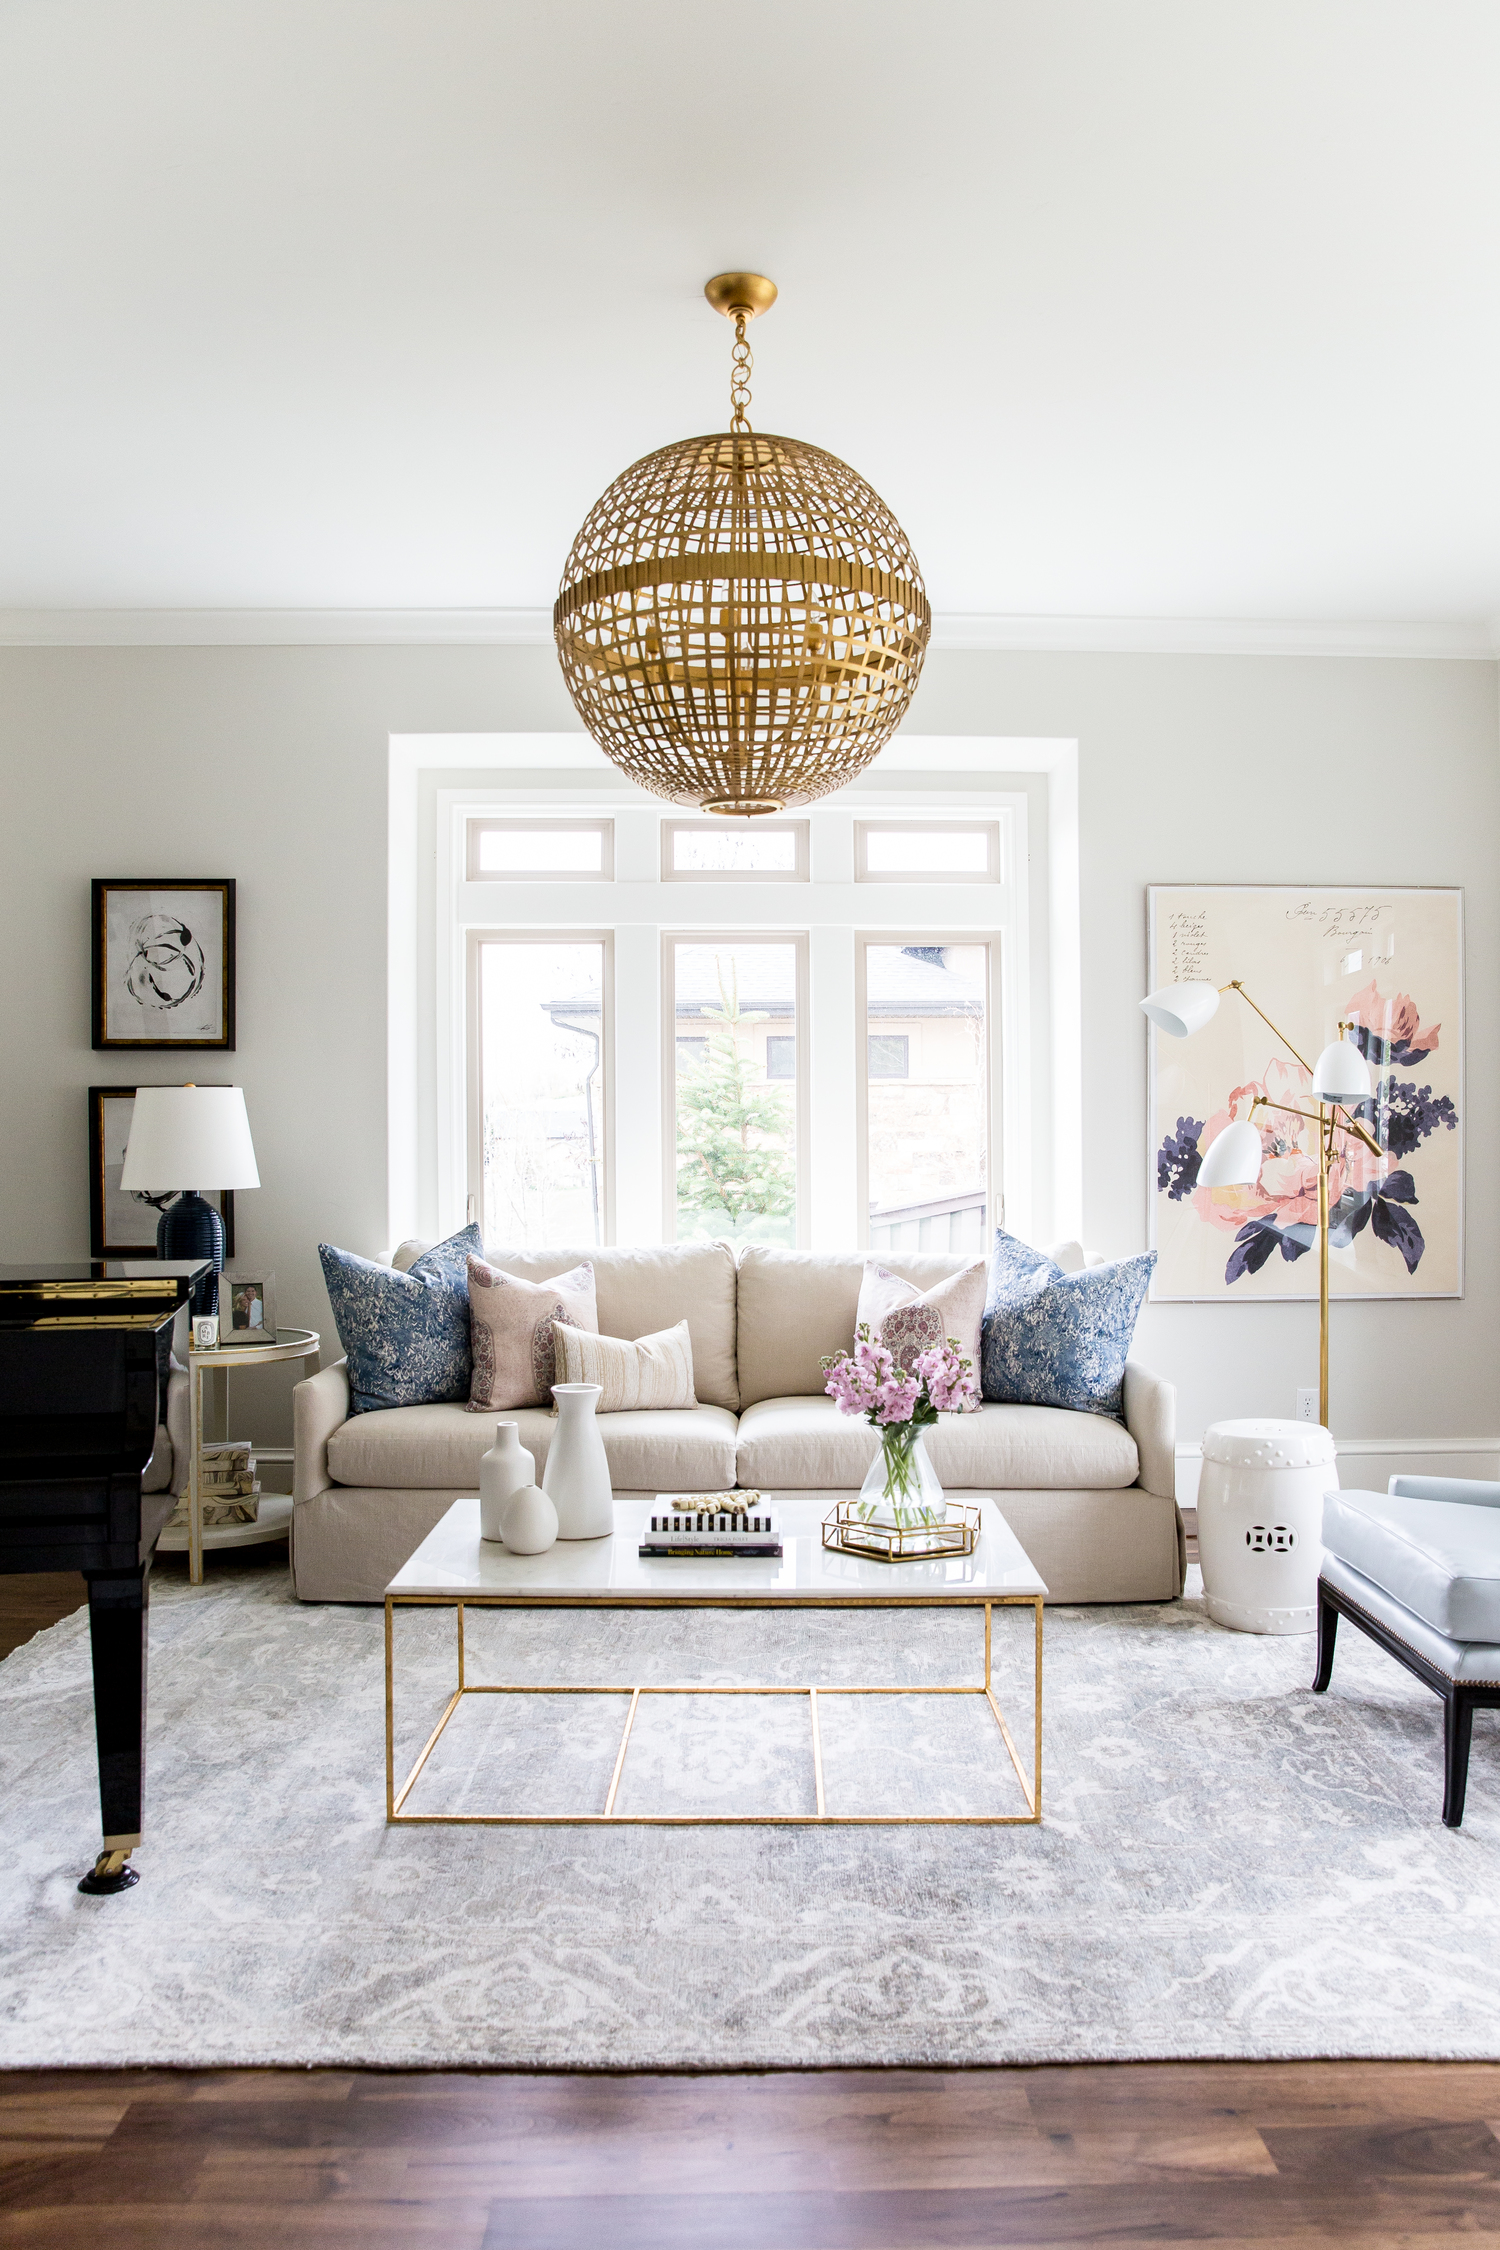 Tan sofa with glass coffee table in front